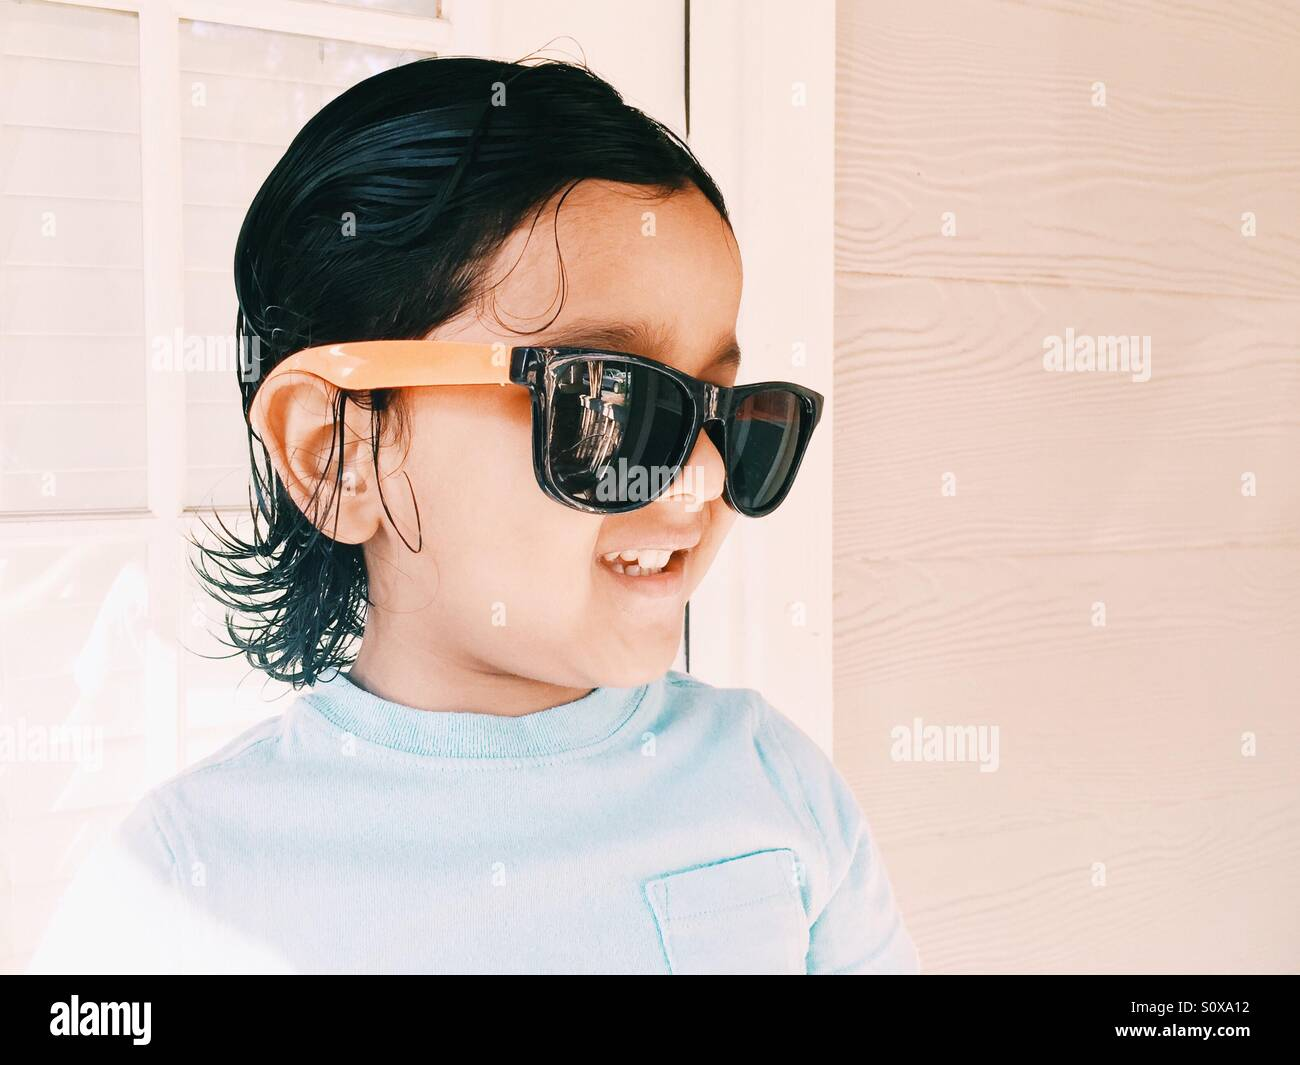 b1976847d6efc Cool dude kid in sunglasses in summertime Stock Photo  310365246 - Alamy